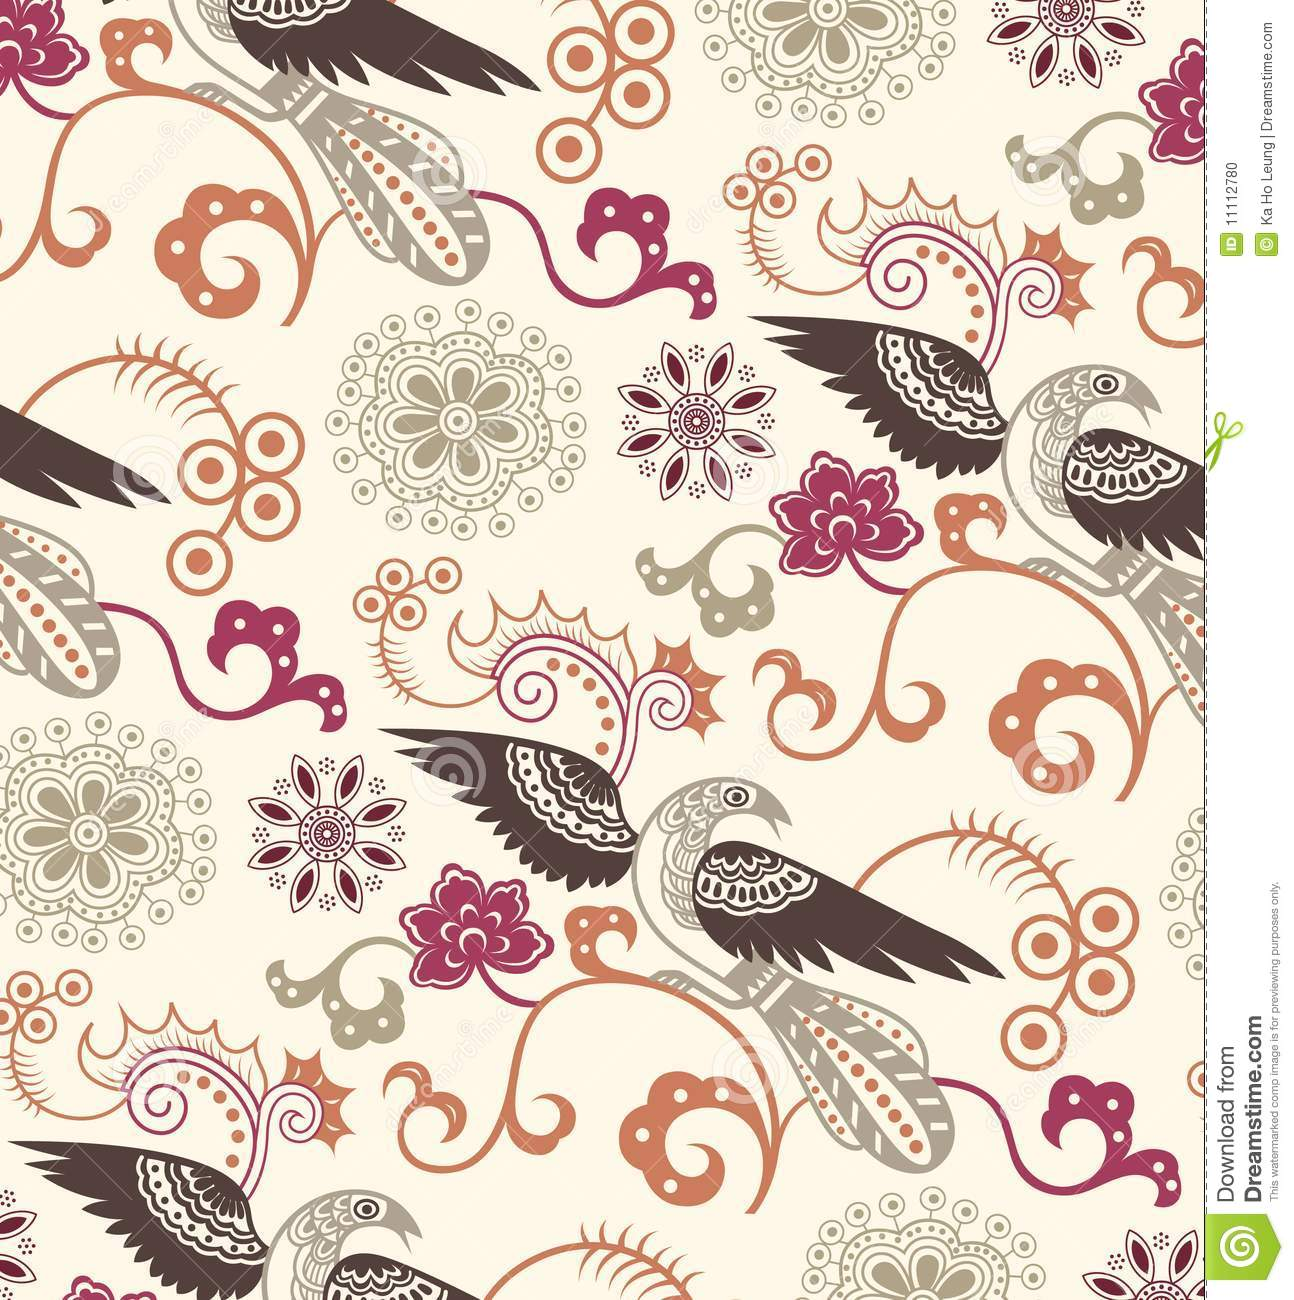 Oriental Floral and Birds Pattern